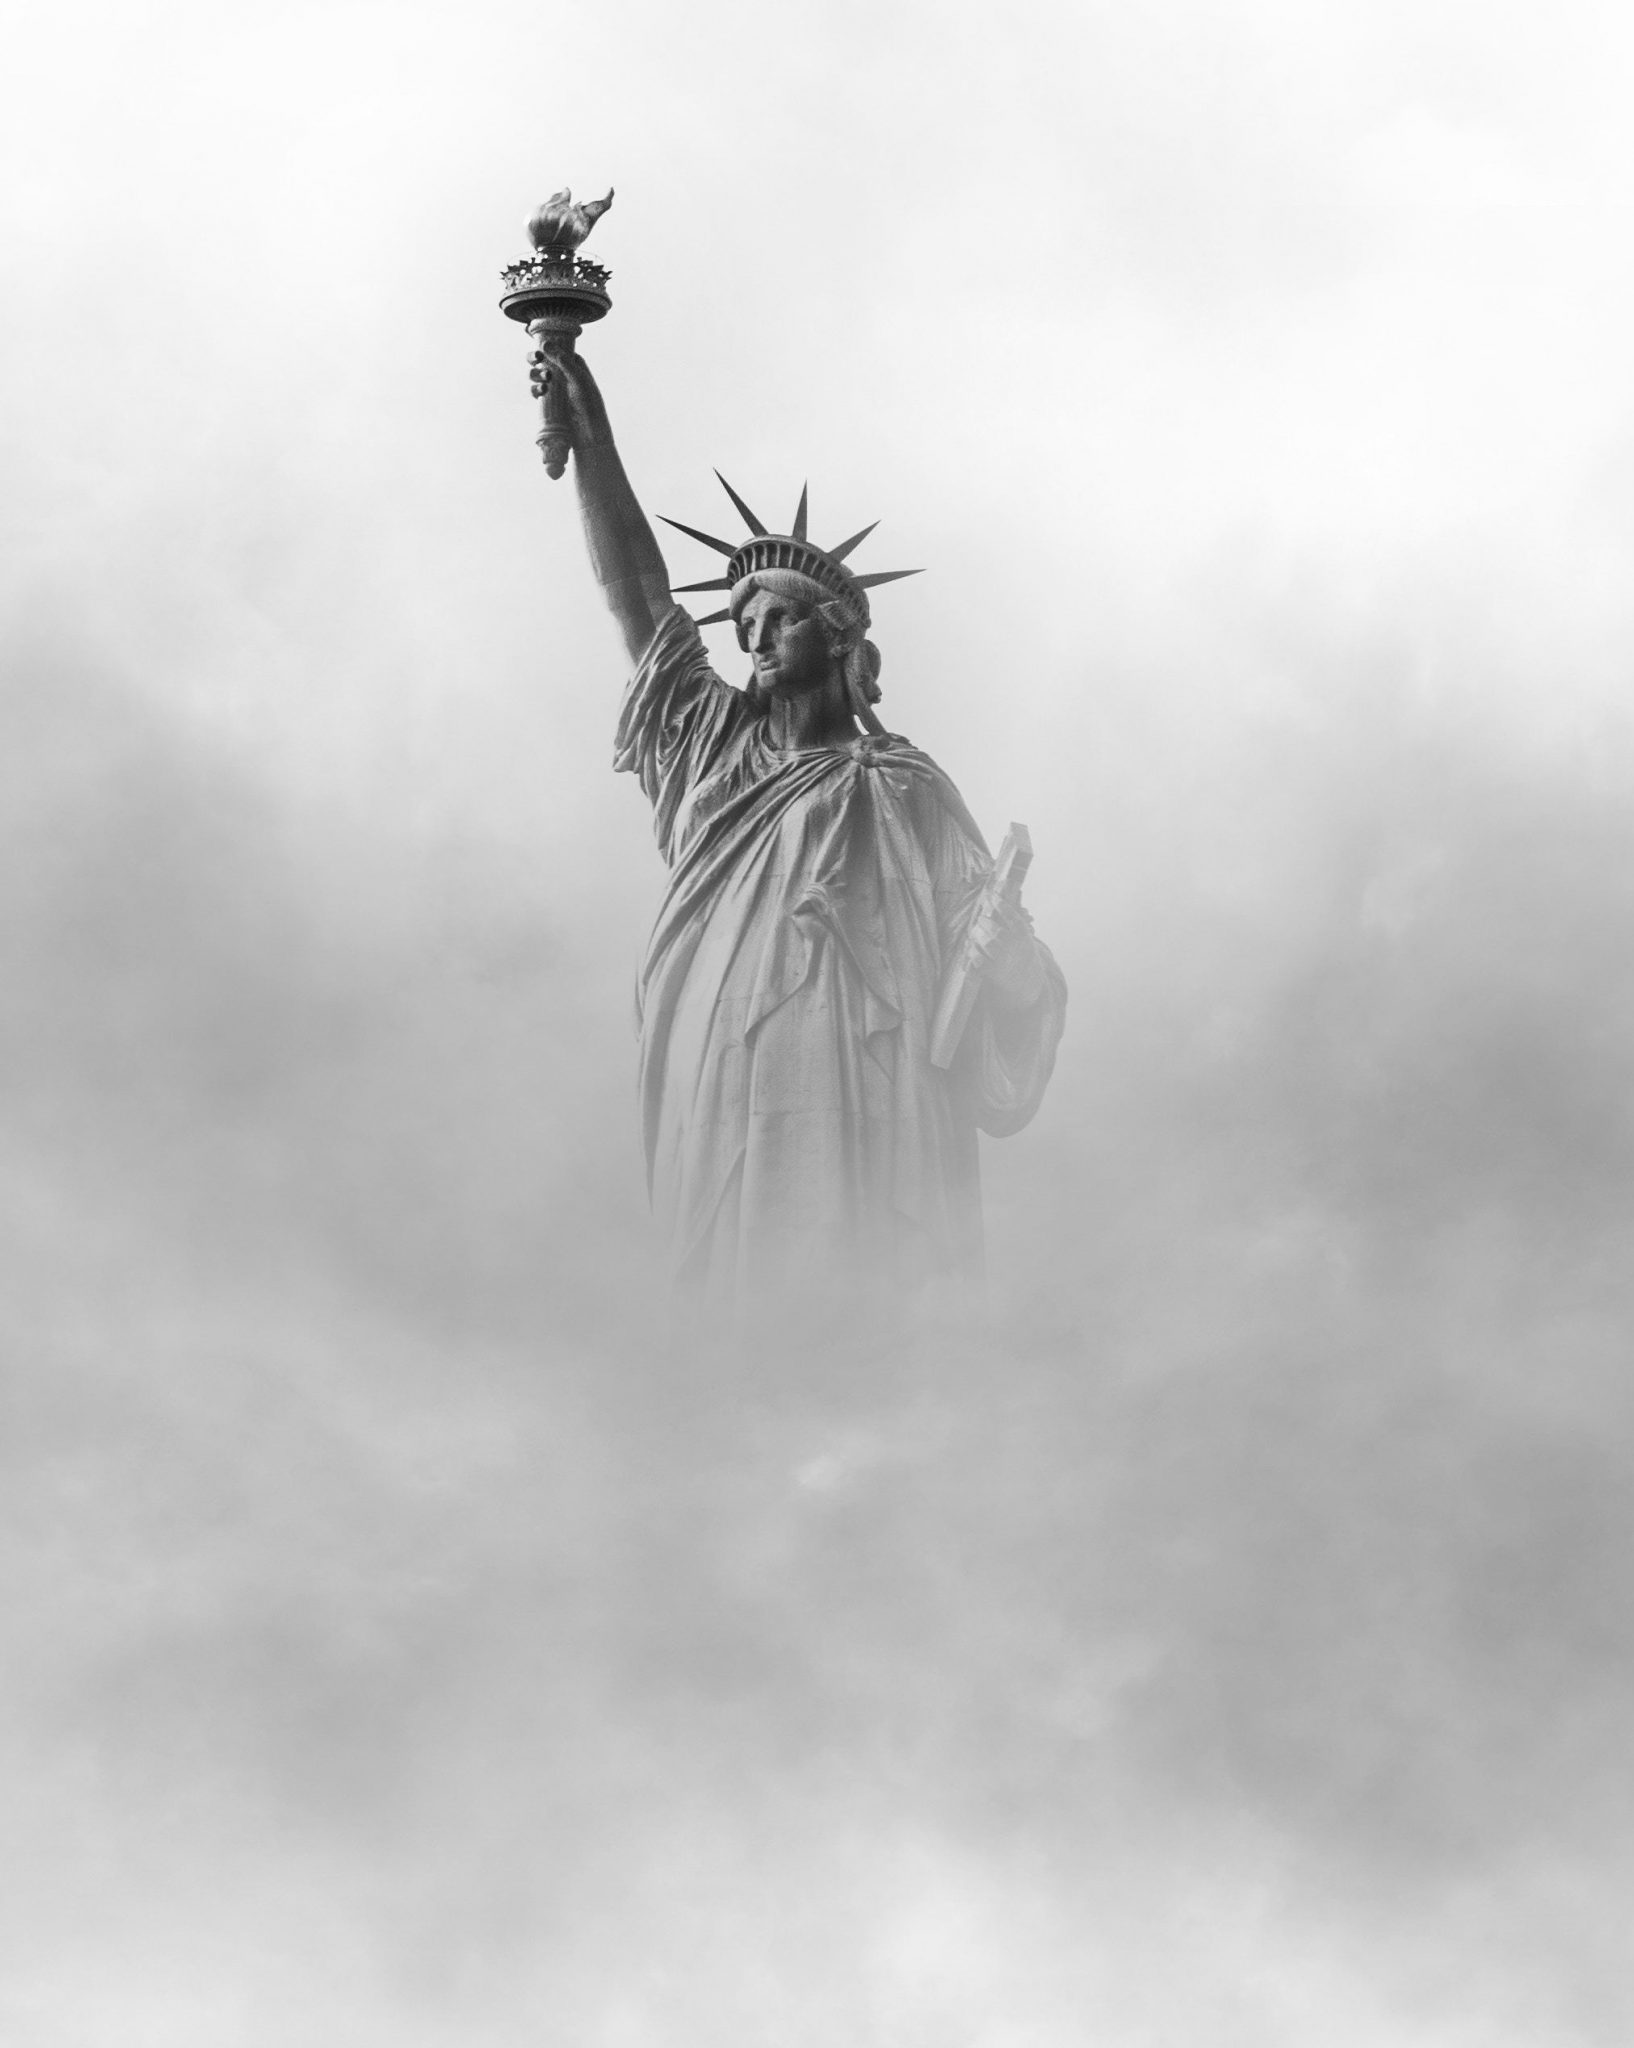 Statue of Liberty- Photo by tom coe on Unsplash